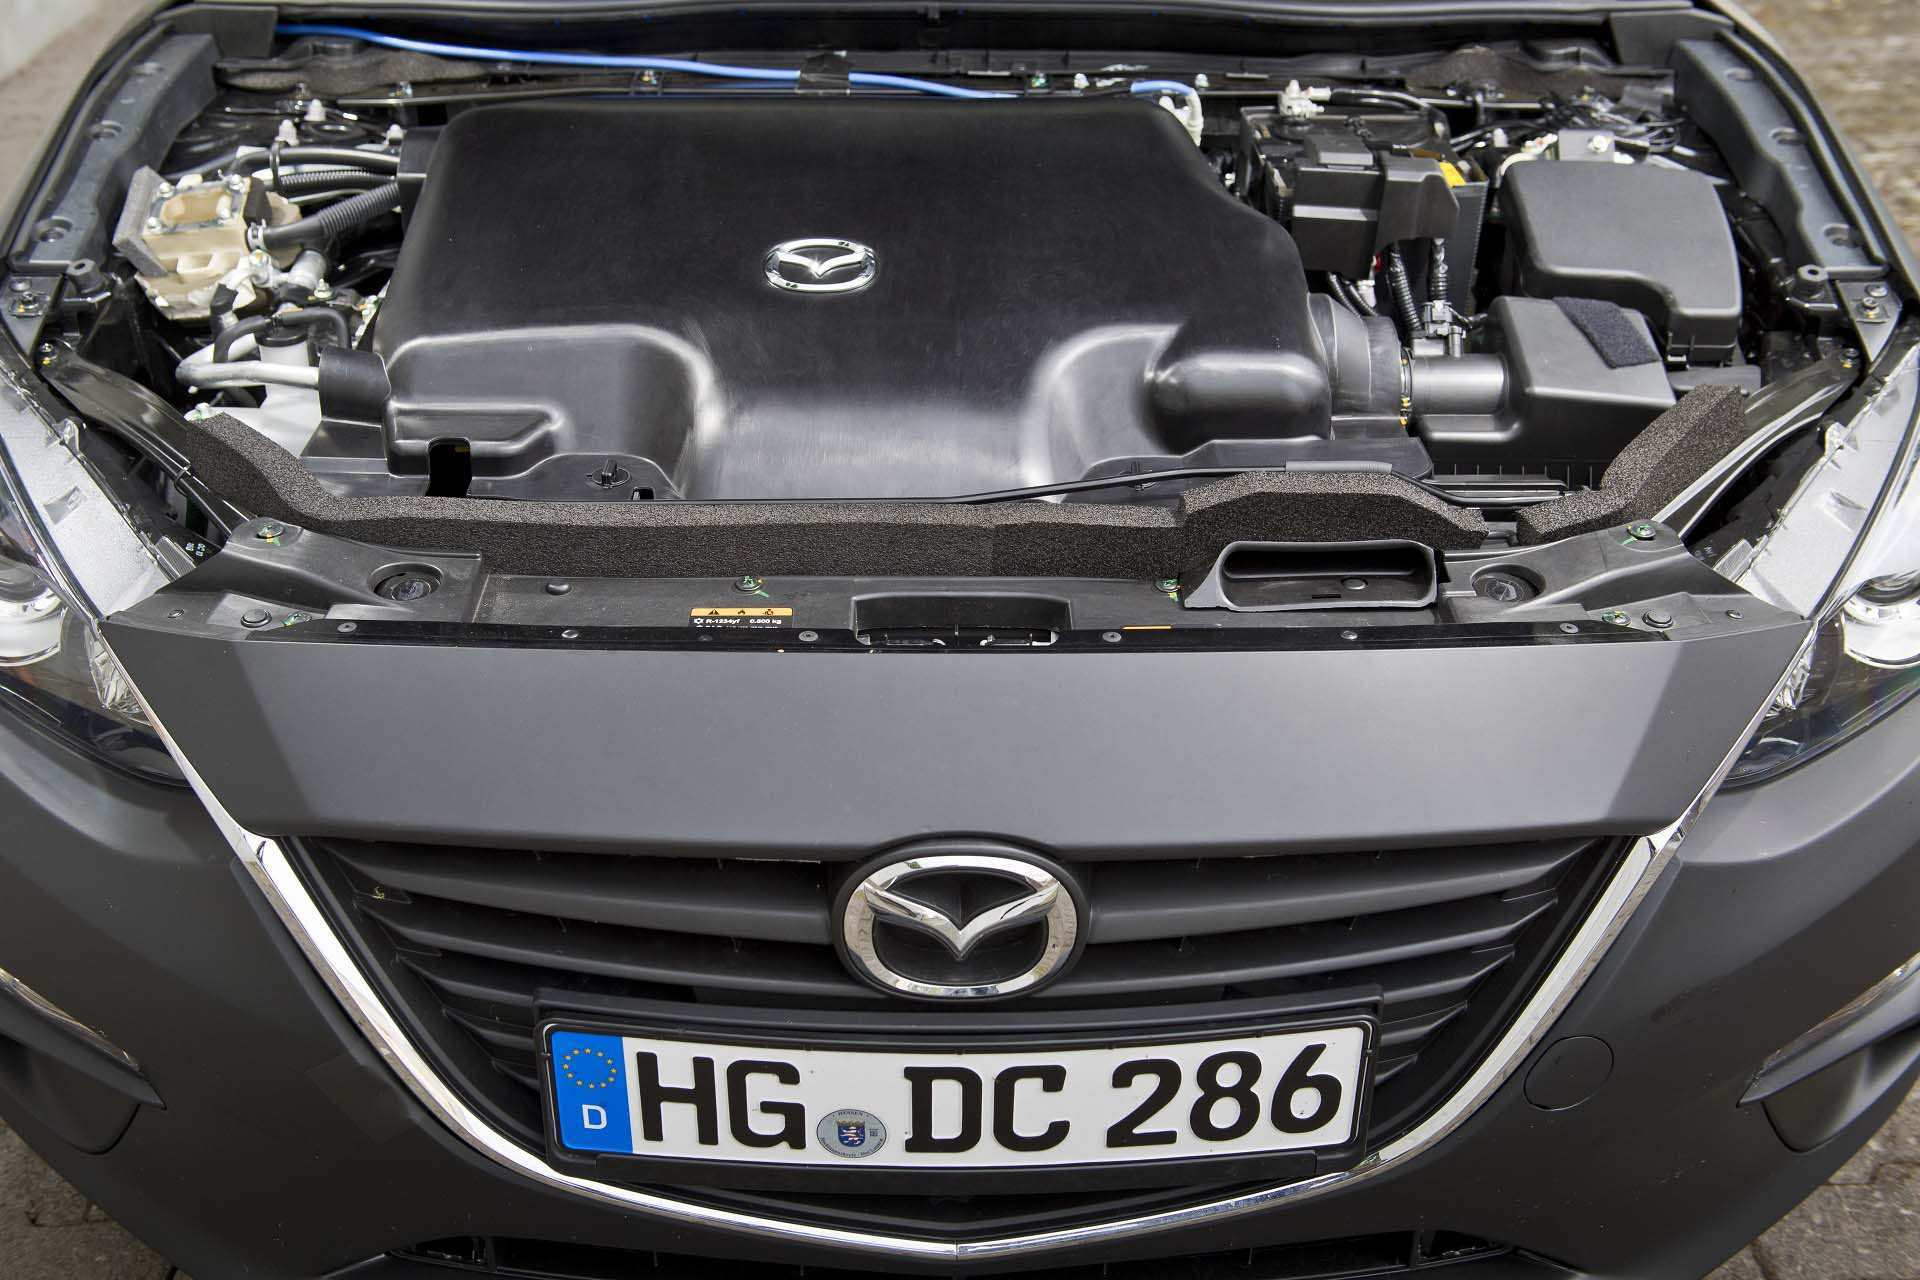 70 The Best 2020 Mazda 3 Fuel Economy Spesification